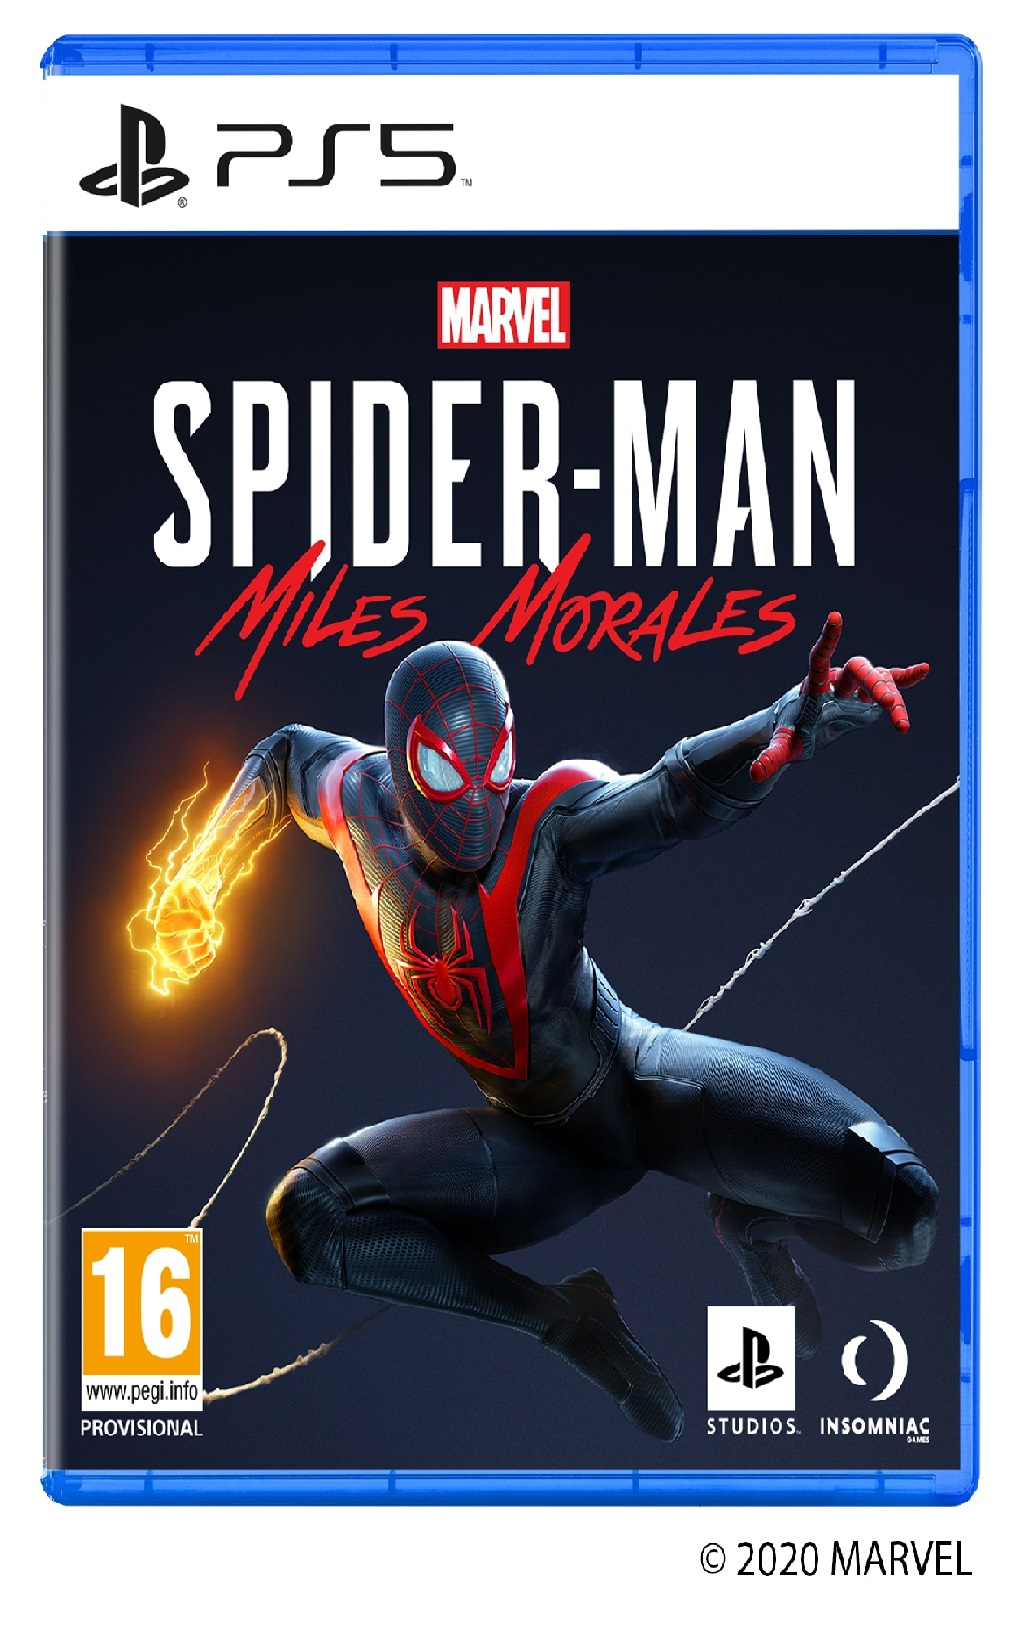 PS5 - Marvel's Spider-Man MMorales